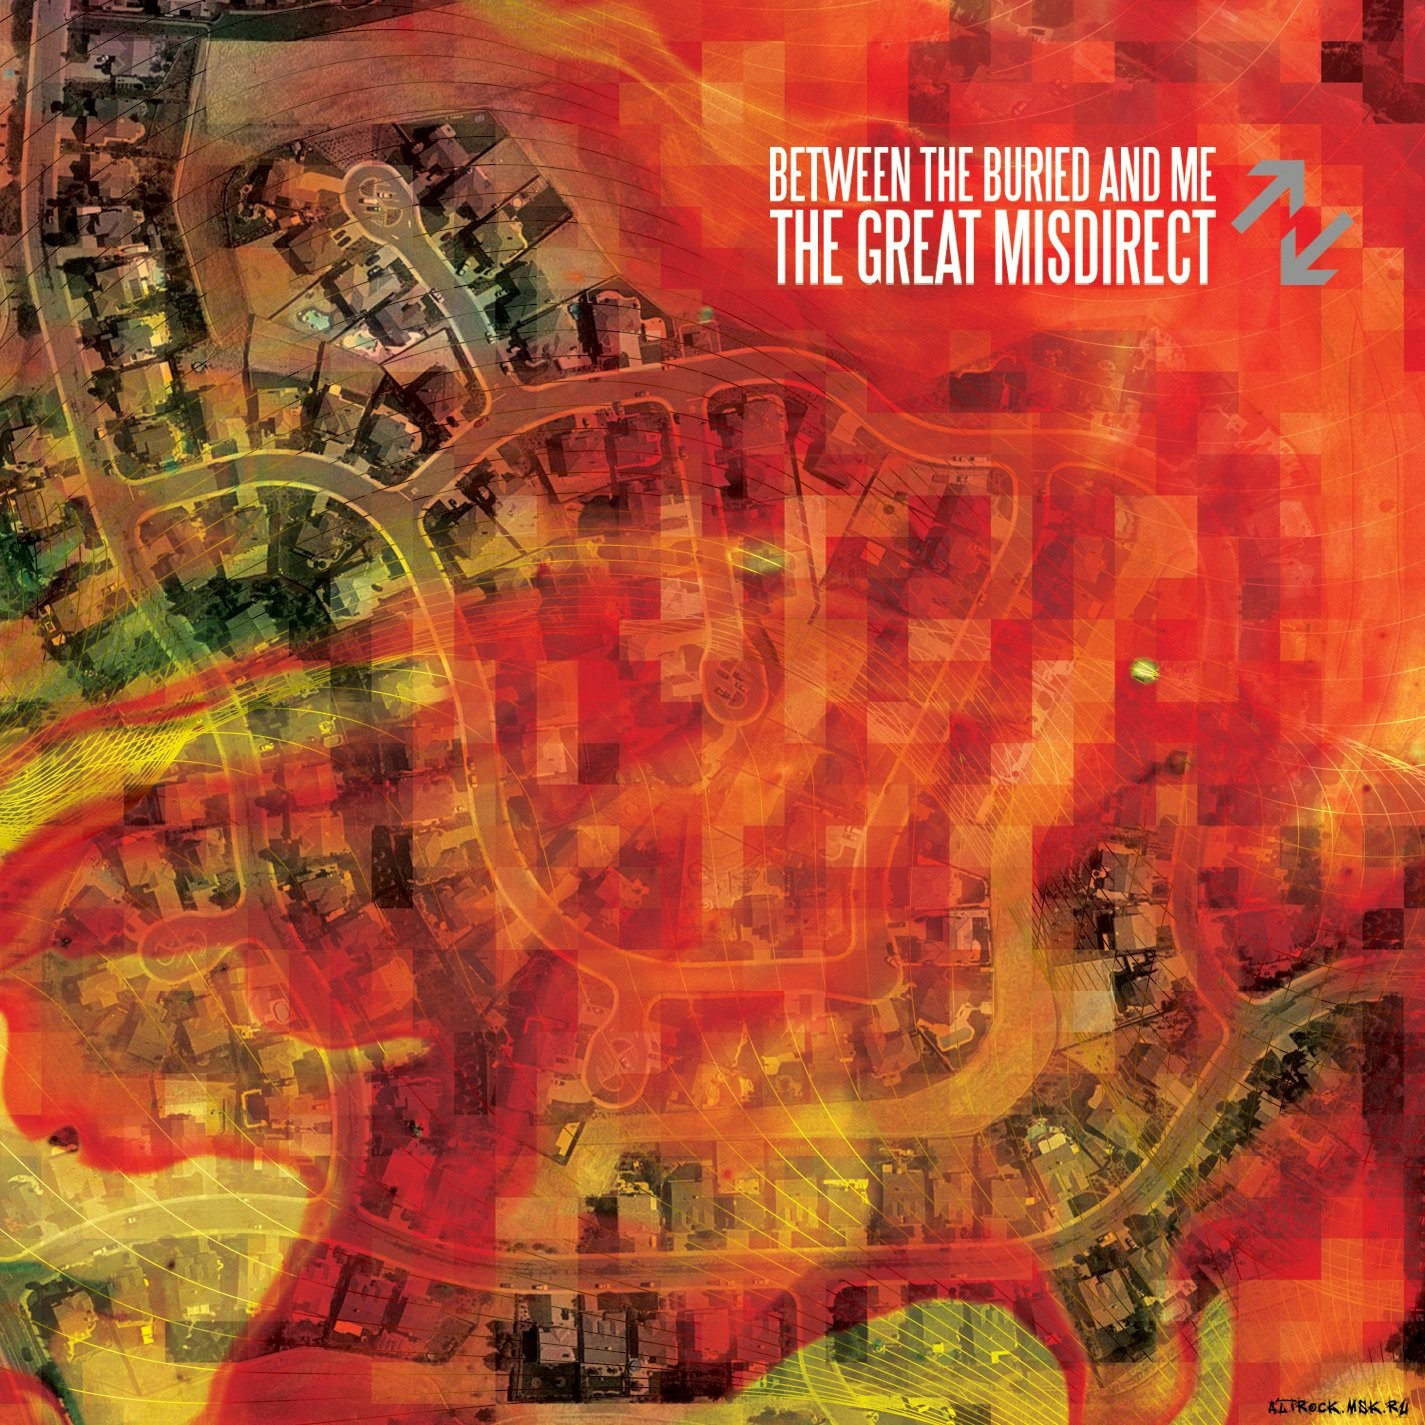 The Great Misdirect Between the Buried and Me ABLUM